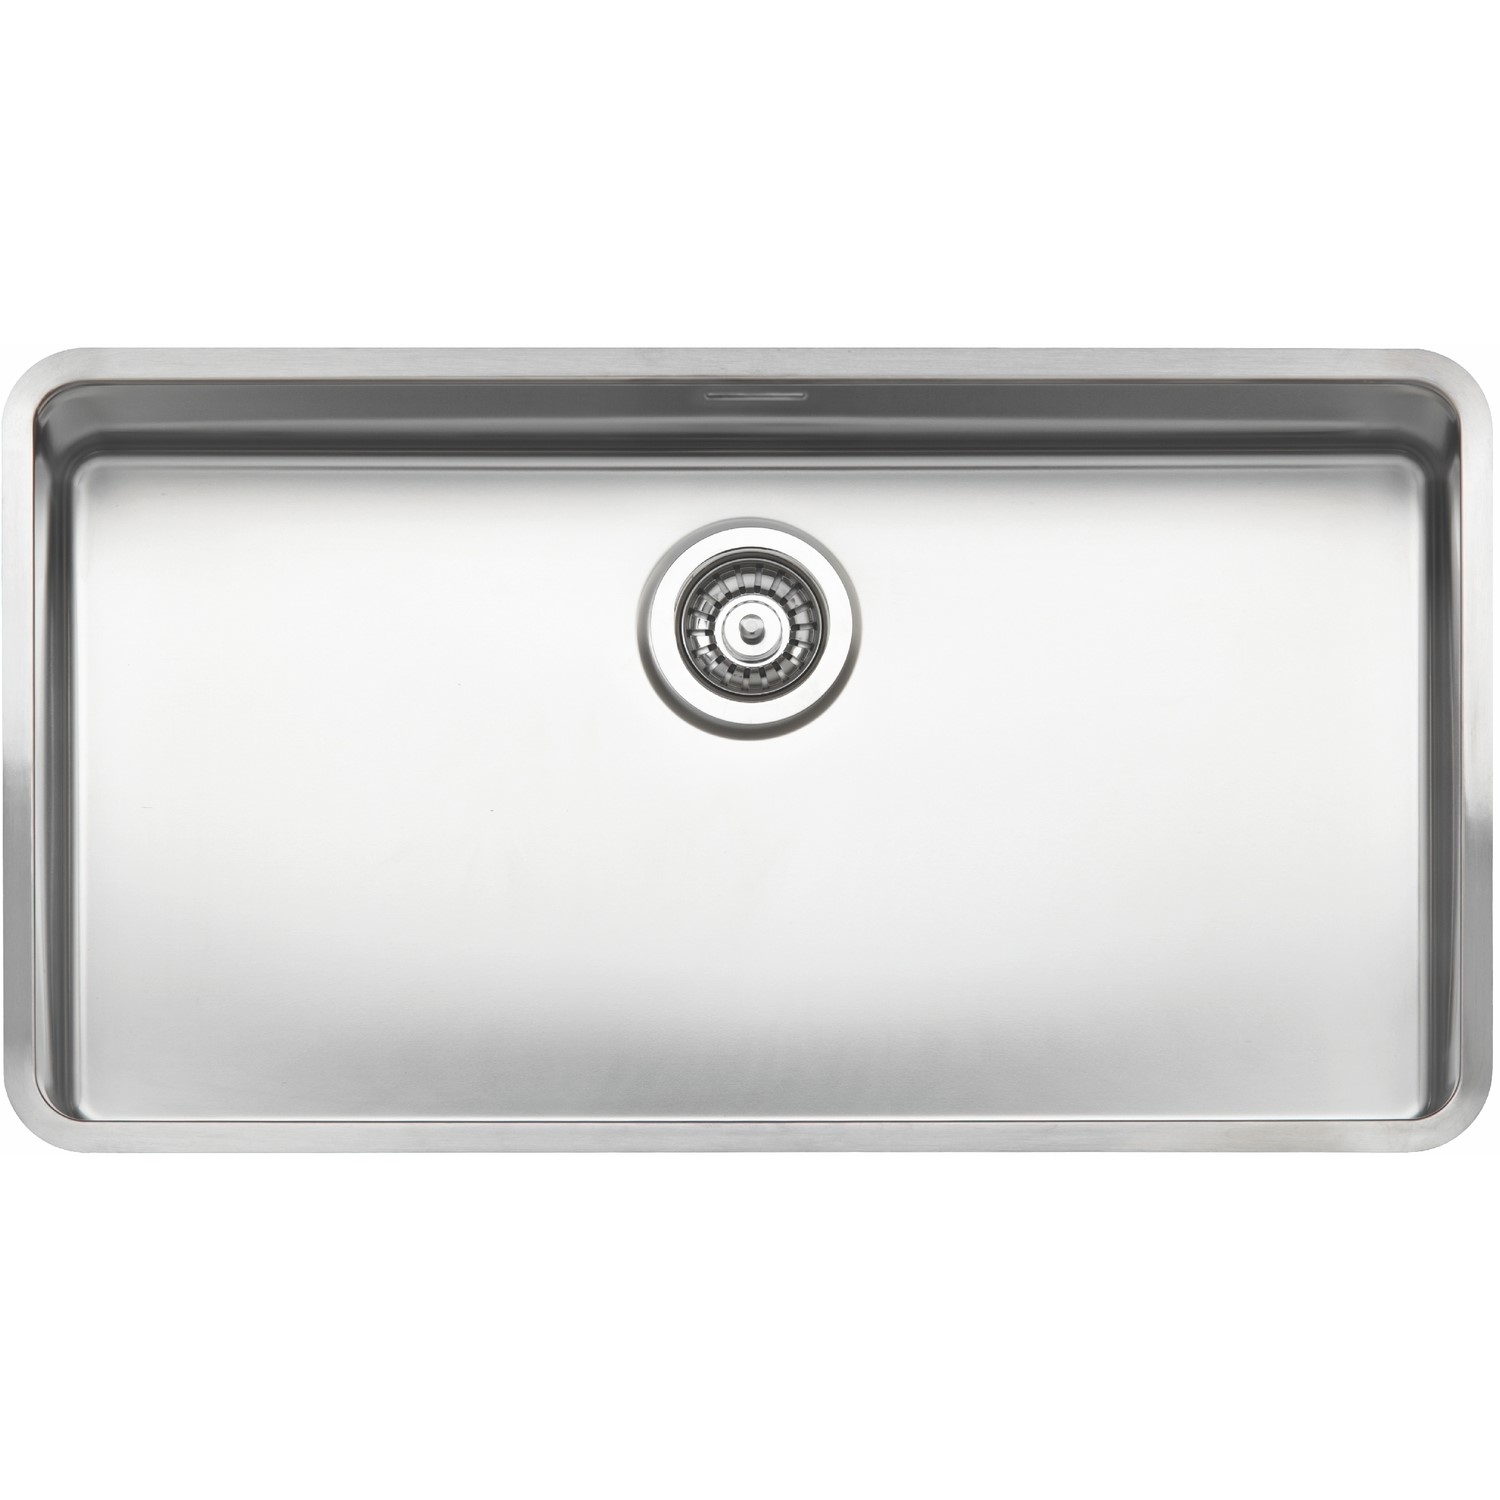 Picture of: Reginox Kansas L80x42 Extra Large 1 0 Bowl Integrated Stainless Steel Sink Appliances Direct